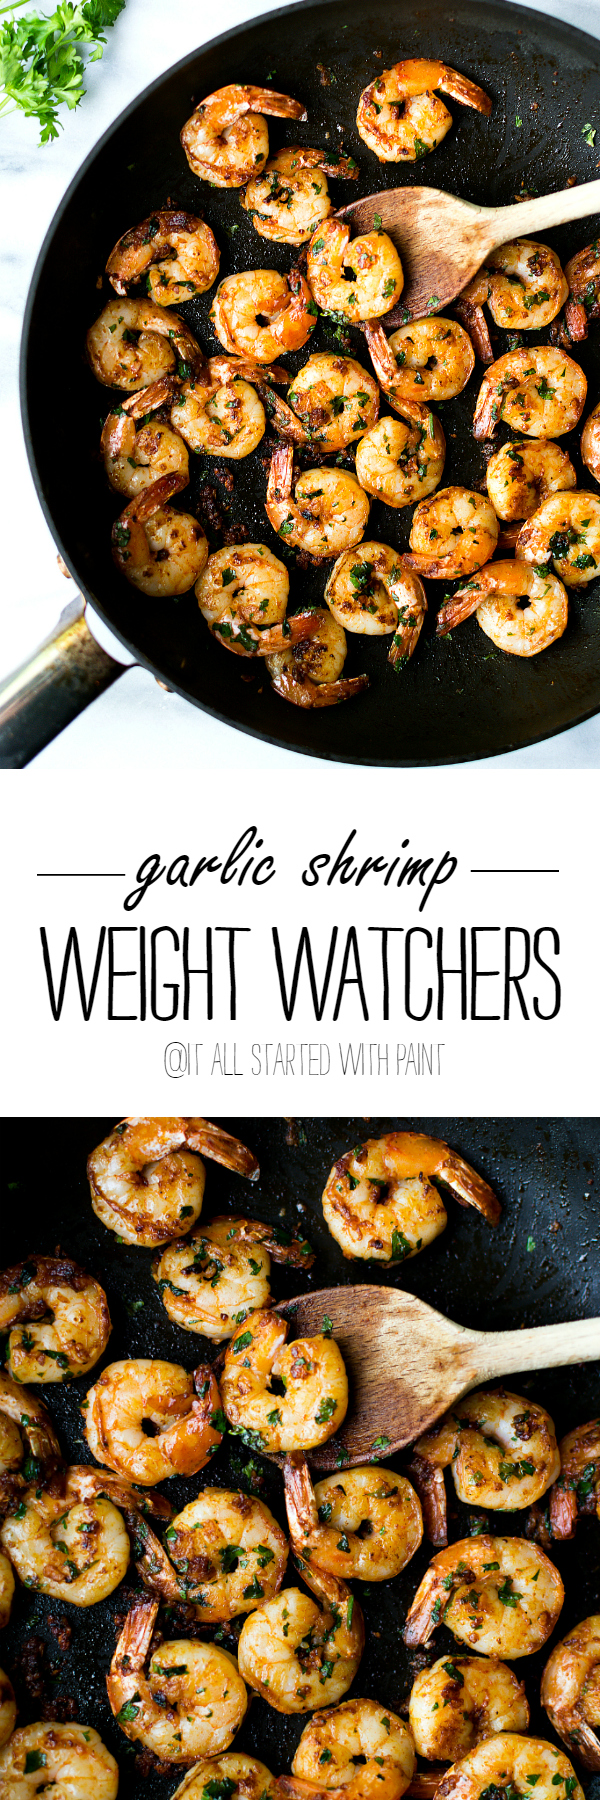 Weight Watchers Recipe Ideas for Dinner